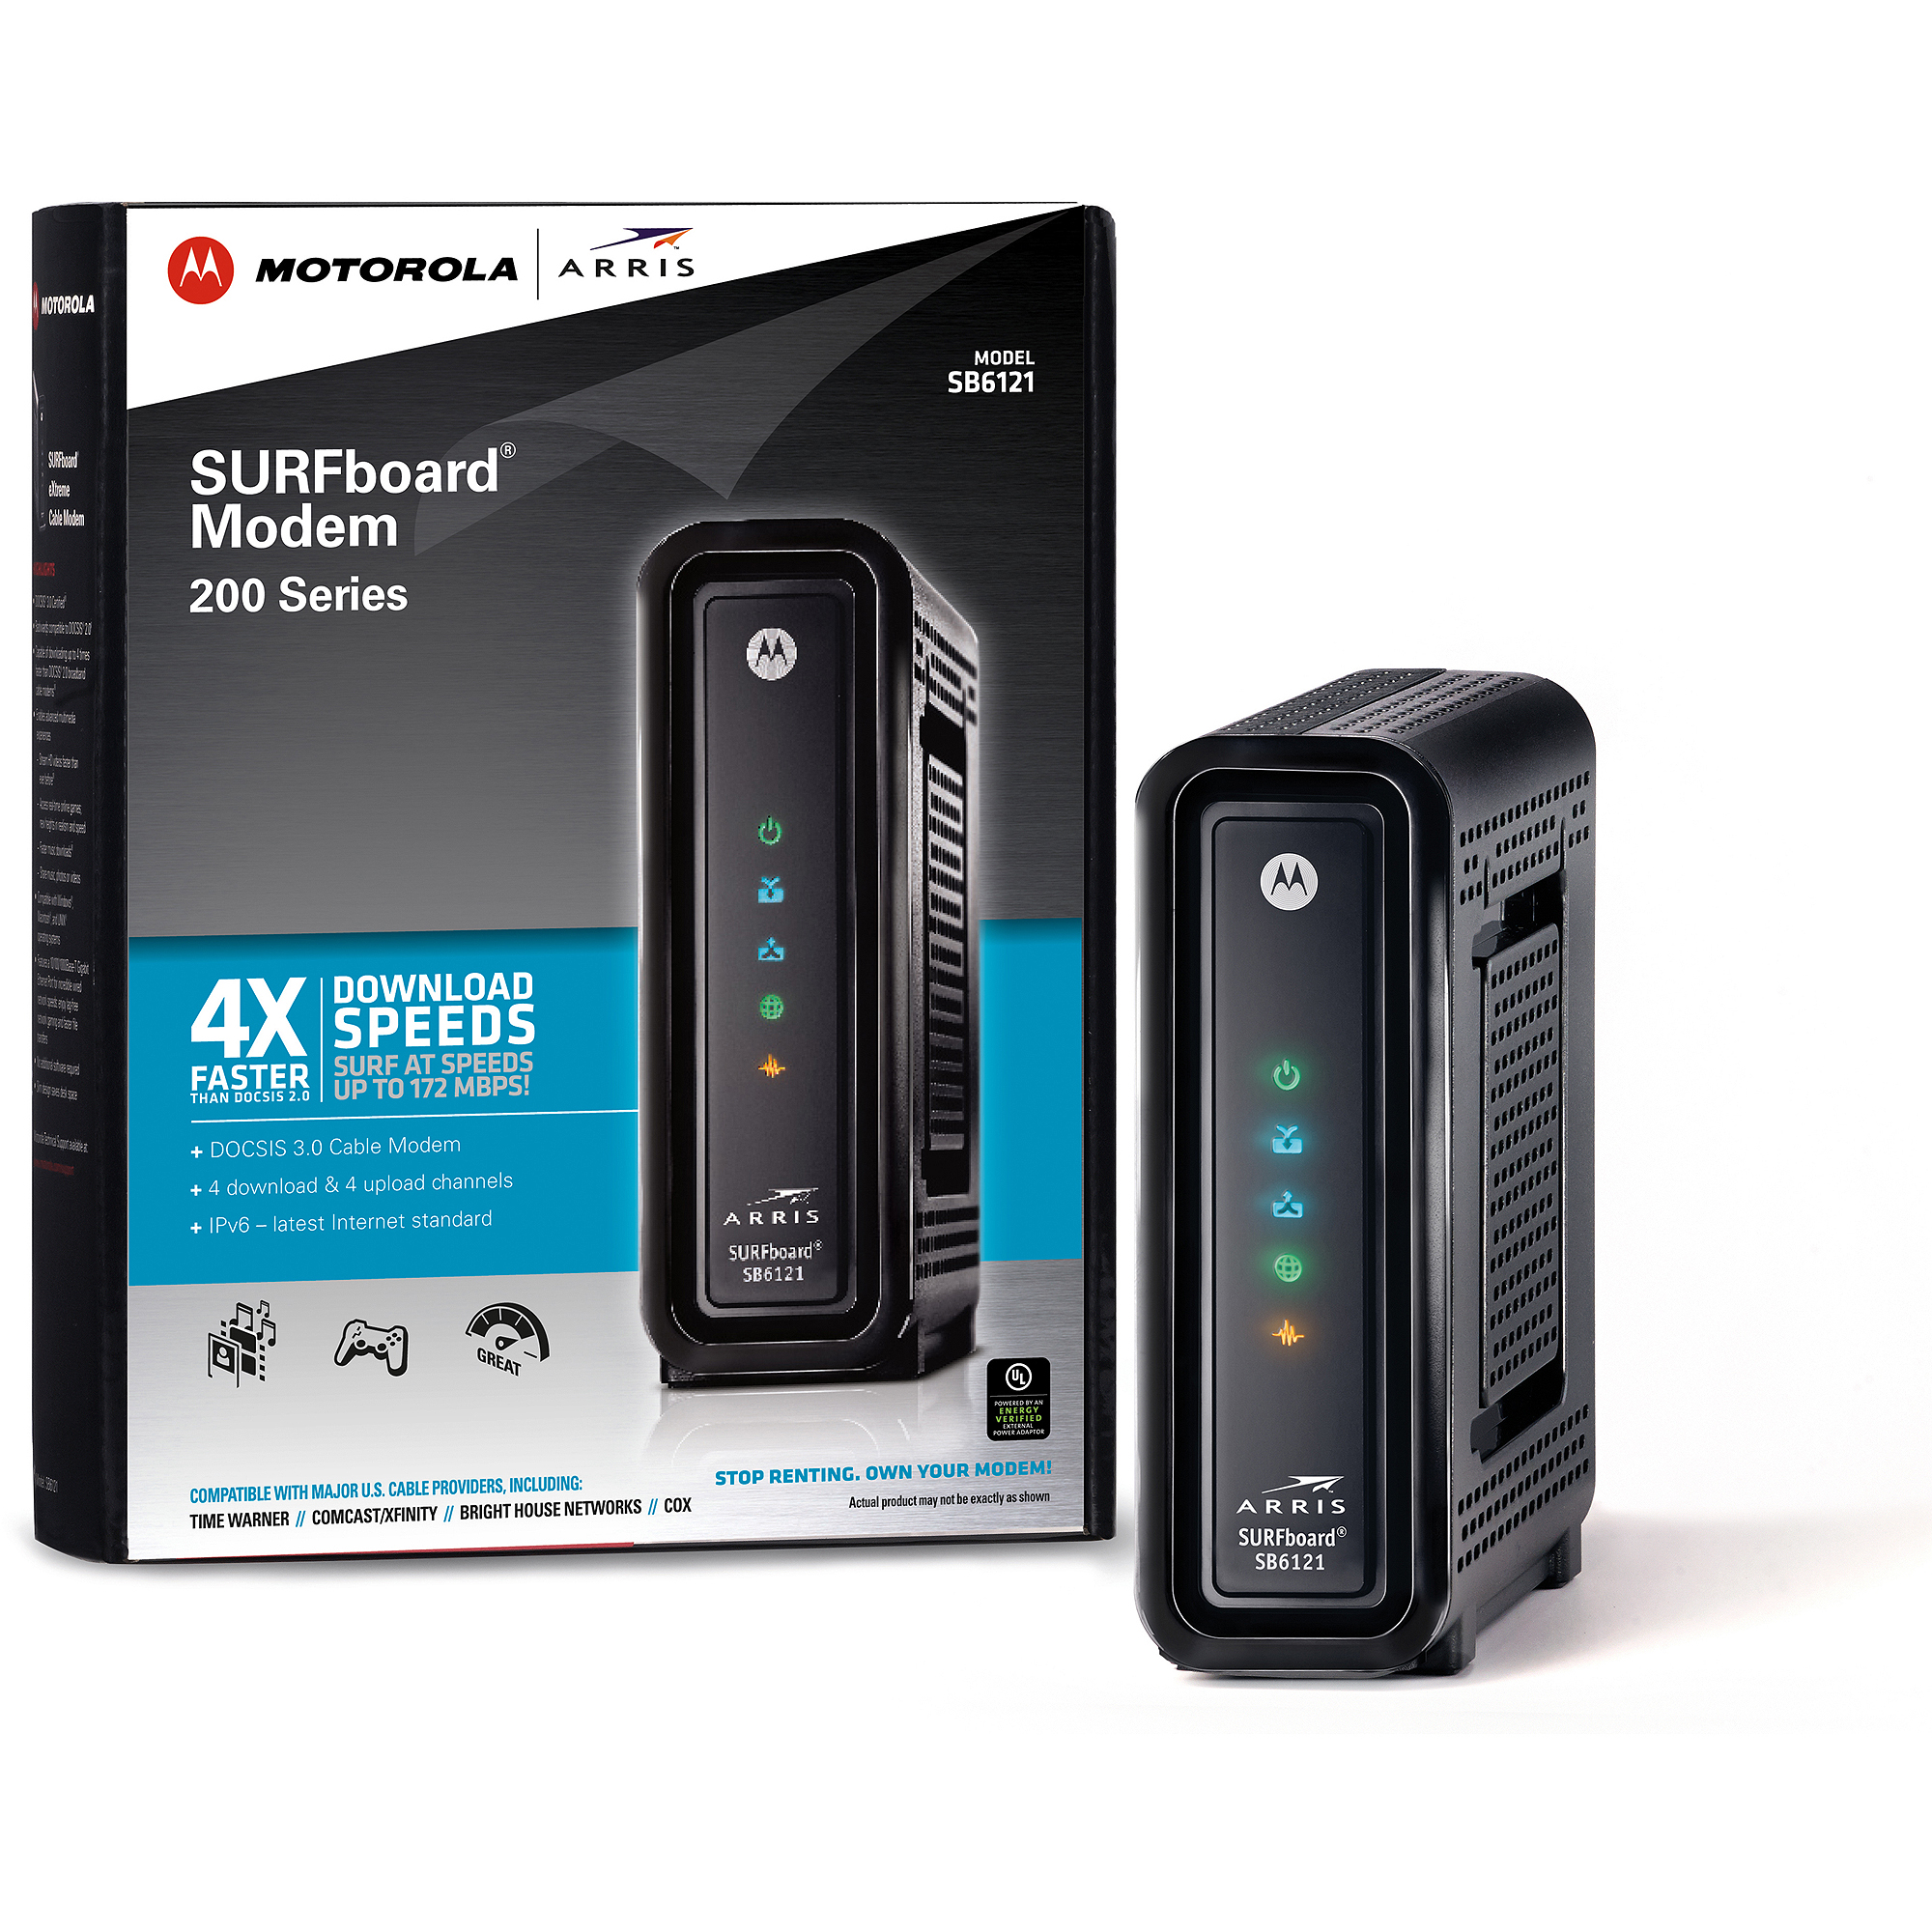 MODEM TRELLIS MOTOROLA WINDOWS 8 DRIVER DOWNLOAD